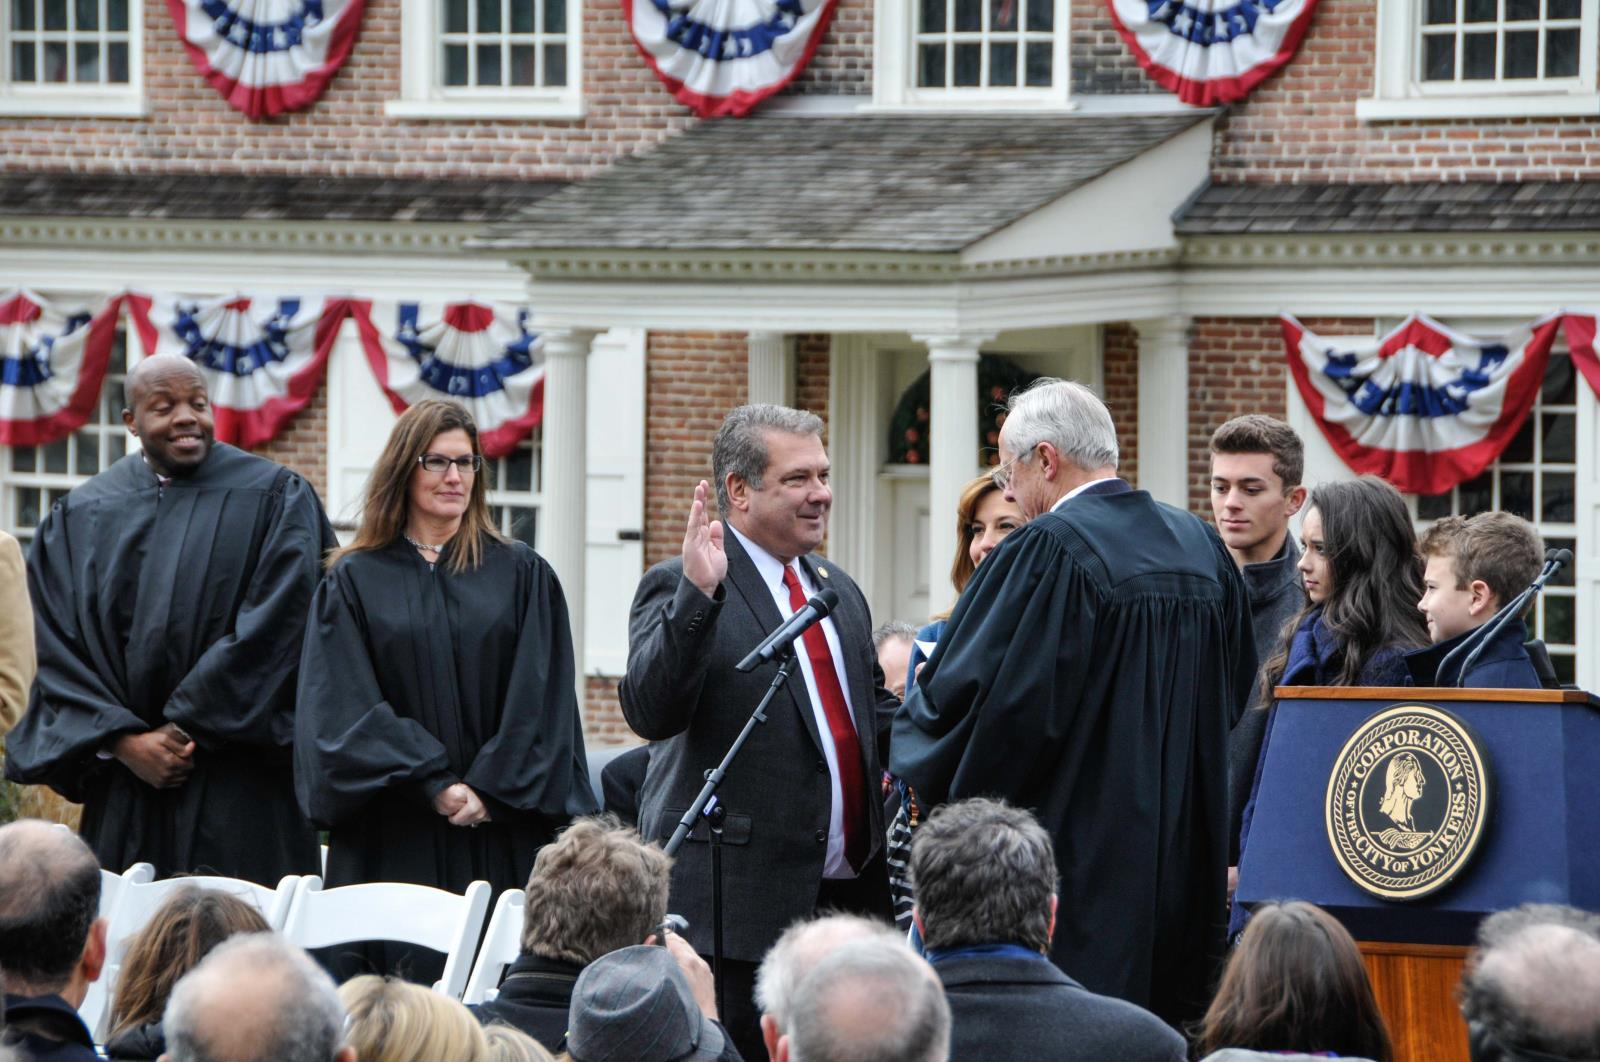 Mayor Spano takes the oath of office to serve a second term as Mayor of the City of Yonkers